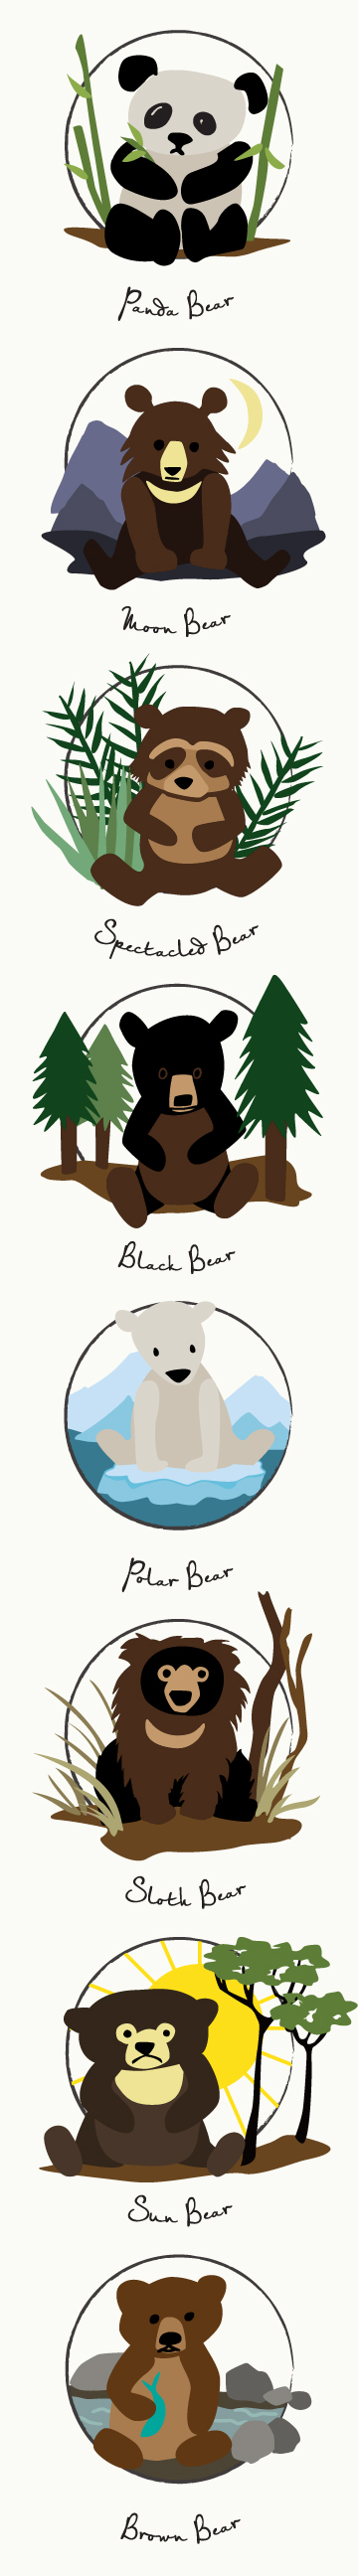 Bear Species Illustration